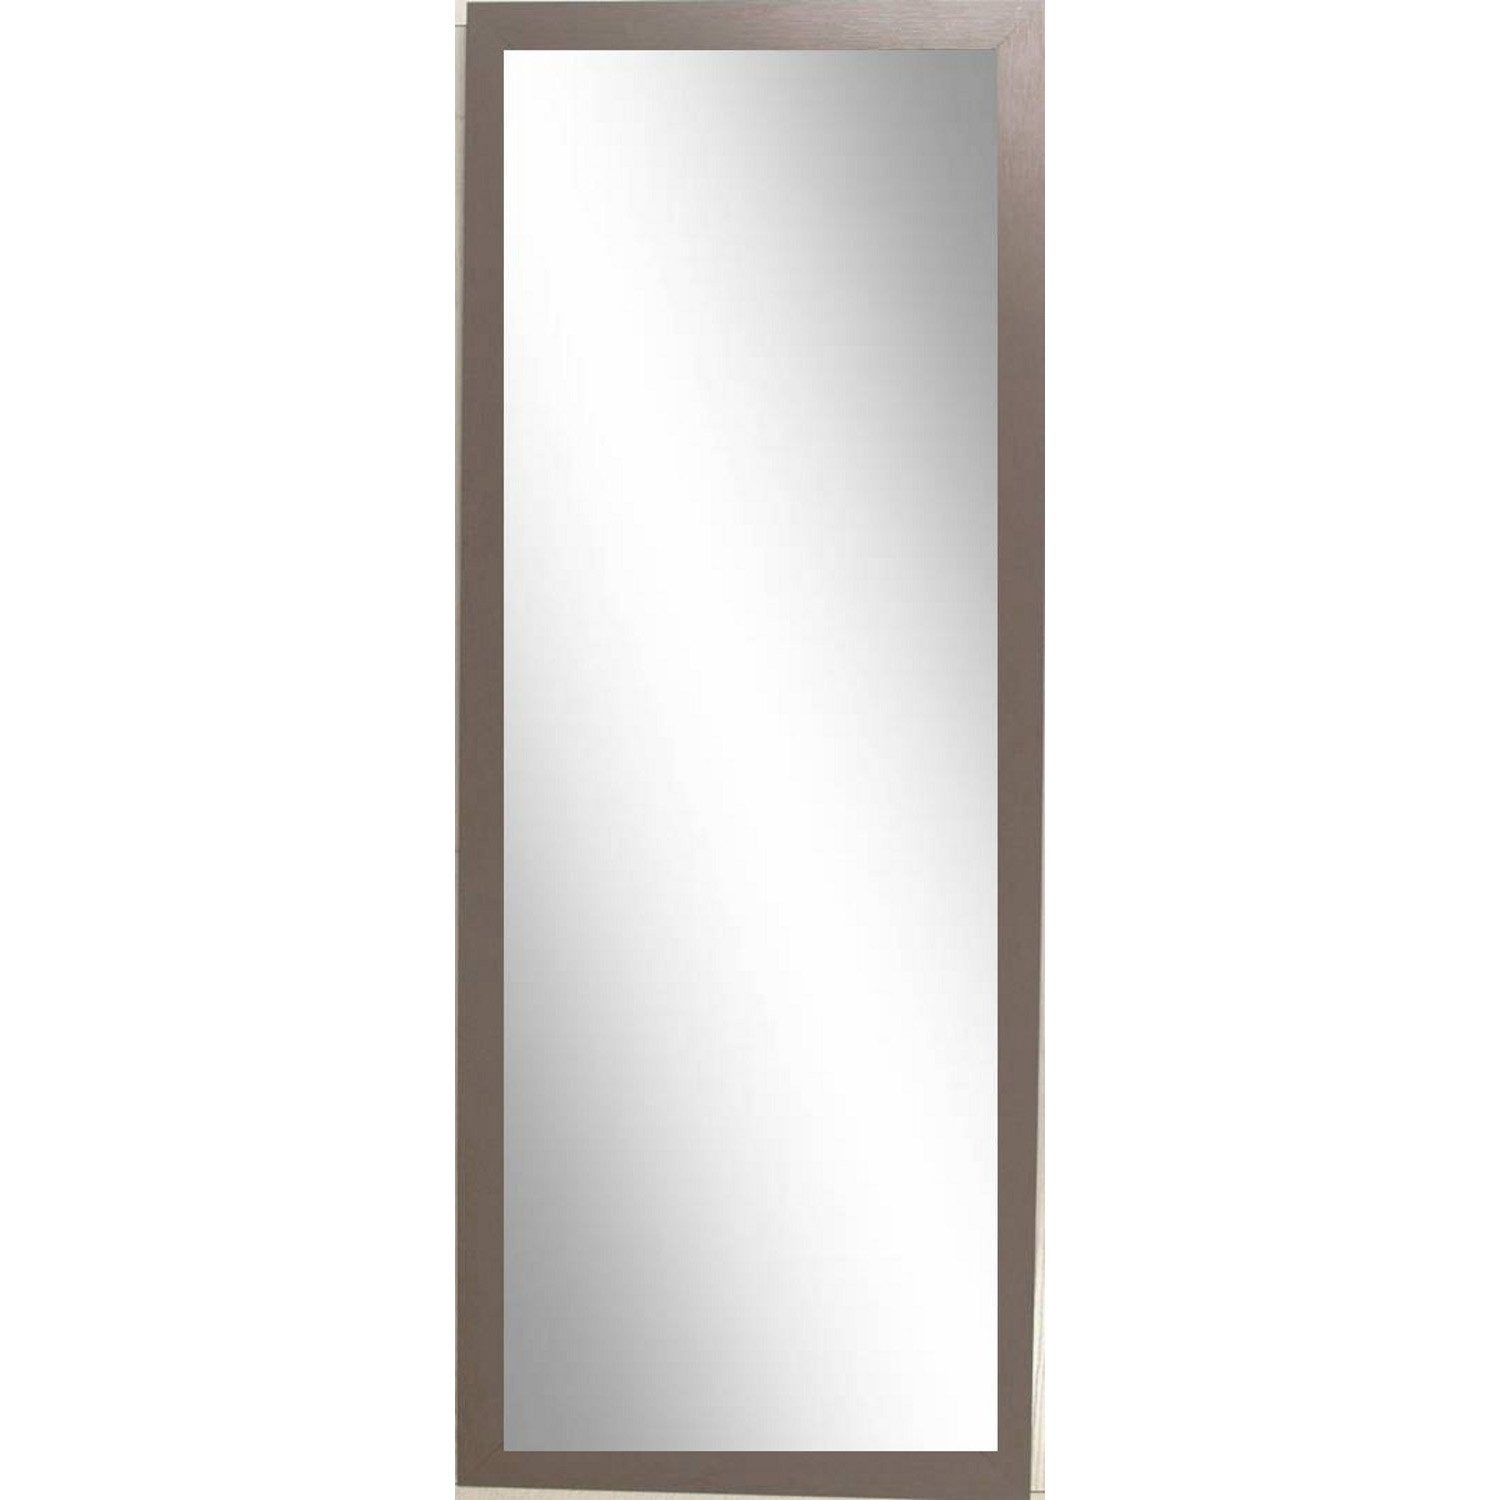 Image gallery miroir for Miroir 60 x 120